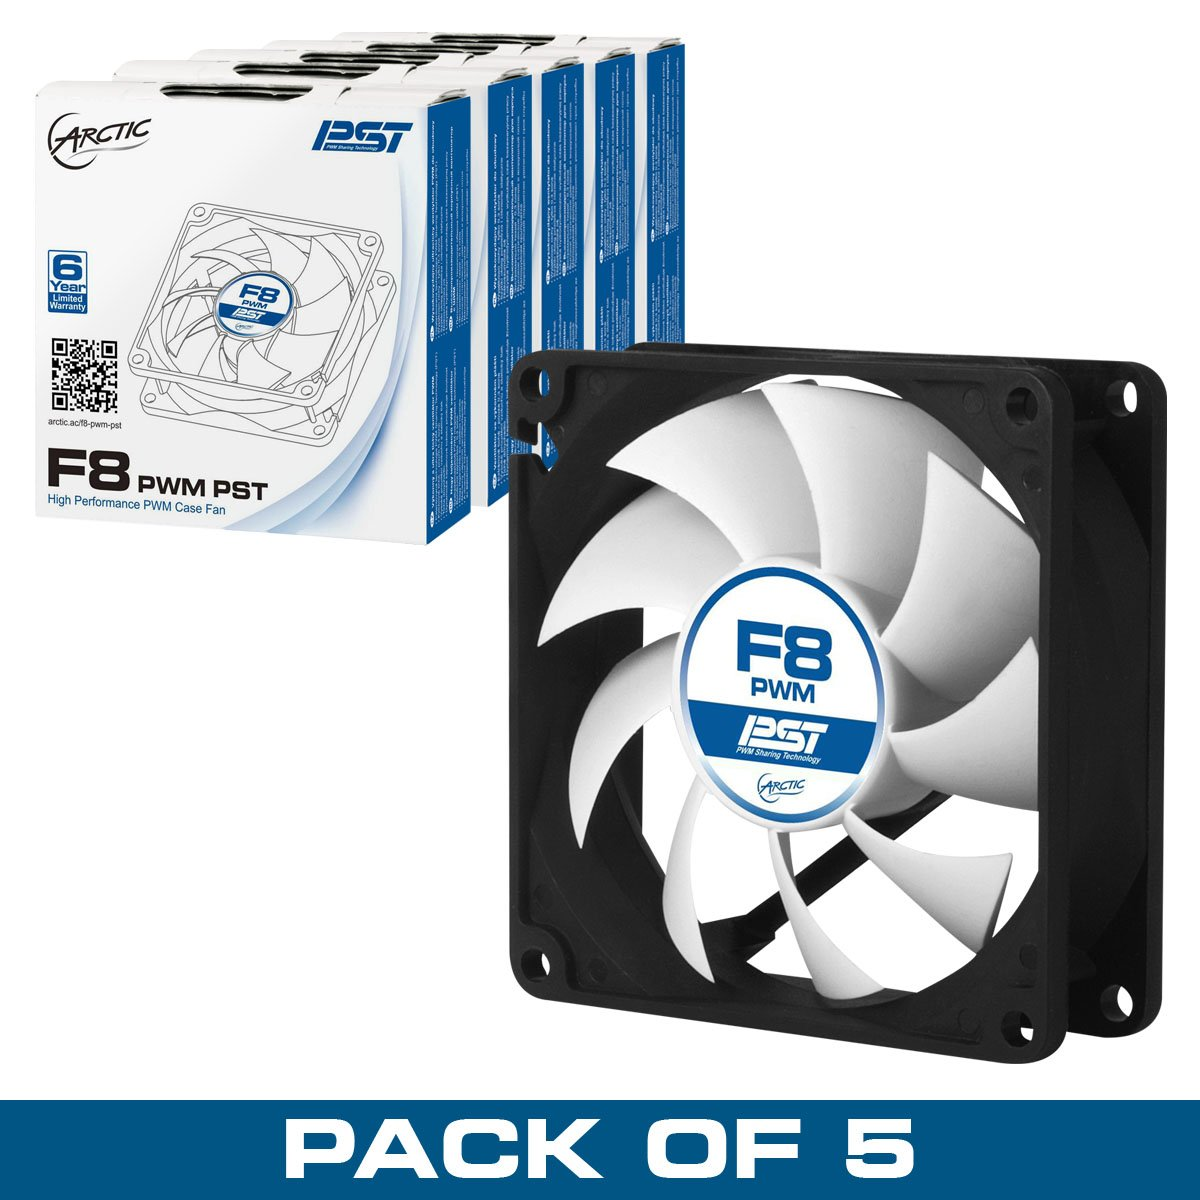 ARCTIC F8 PWM PST - Value Pack (5pc) - Standard Low Noise PWM Controlled Case Fan with PST Feature